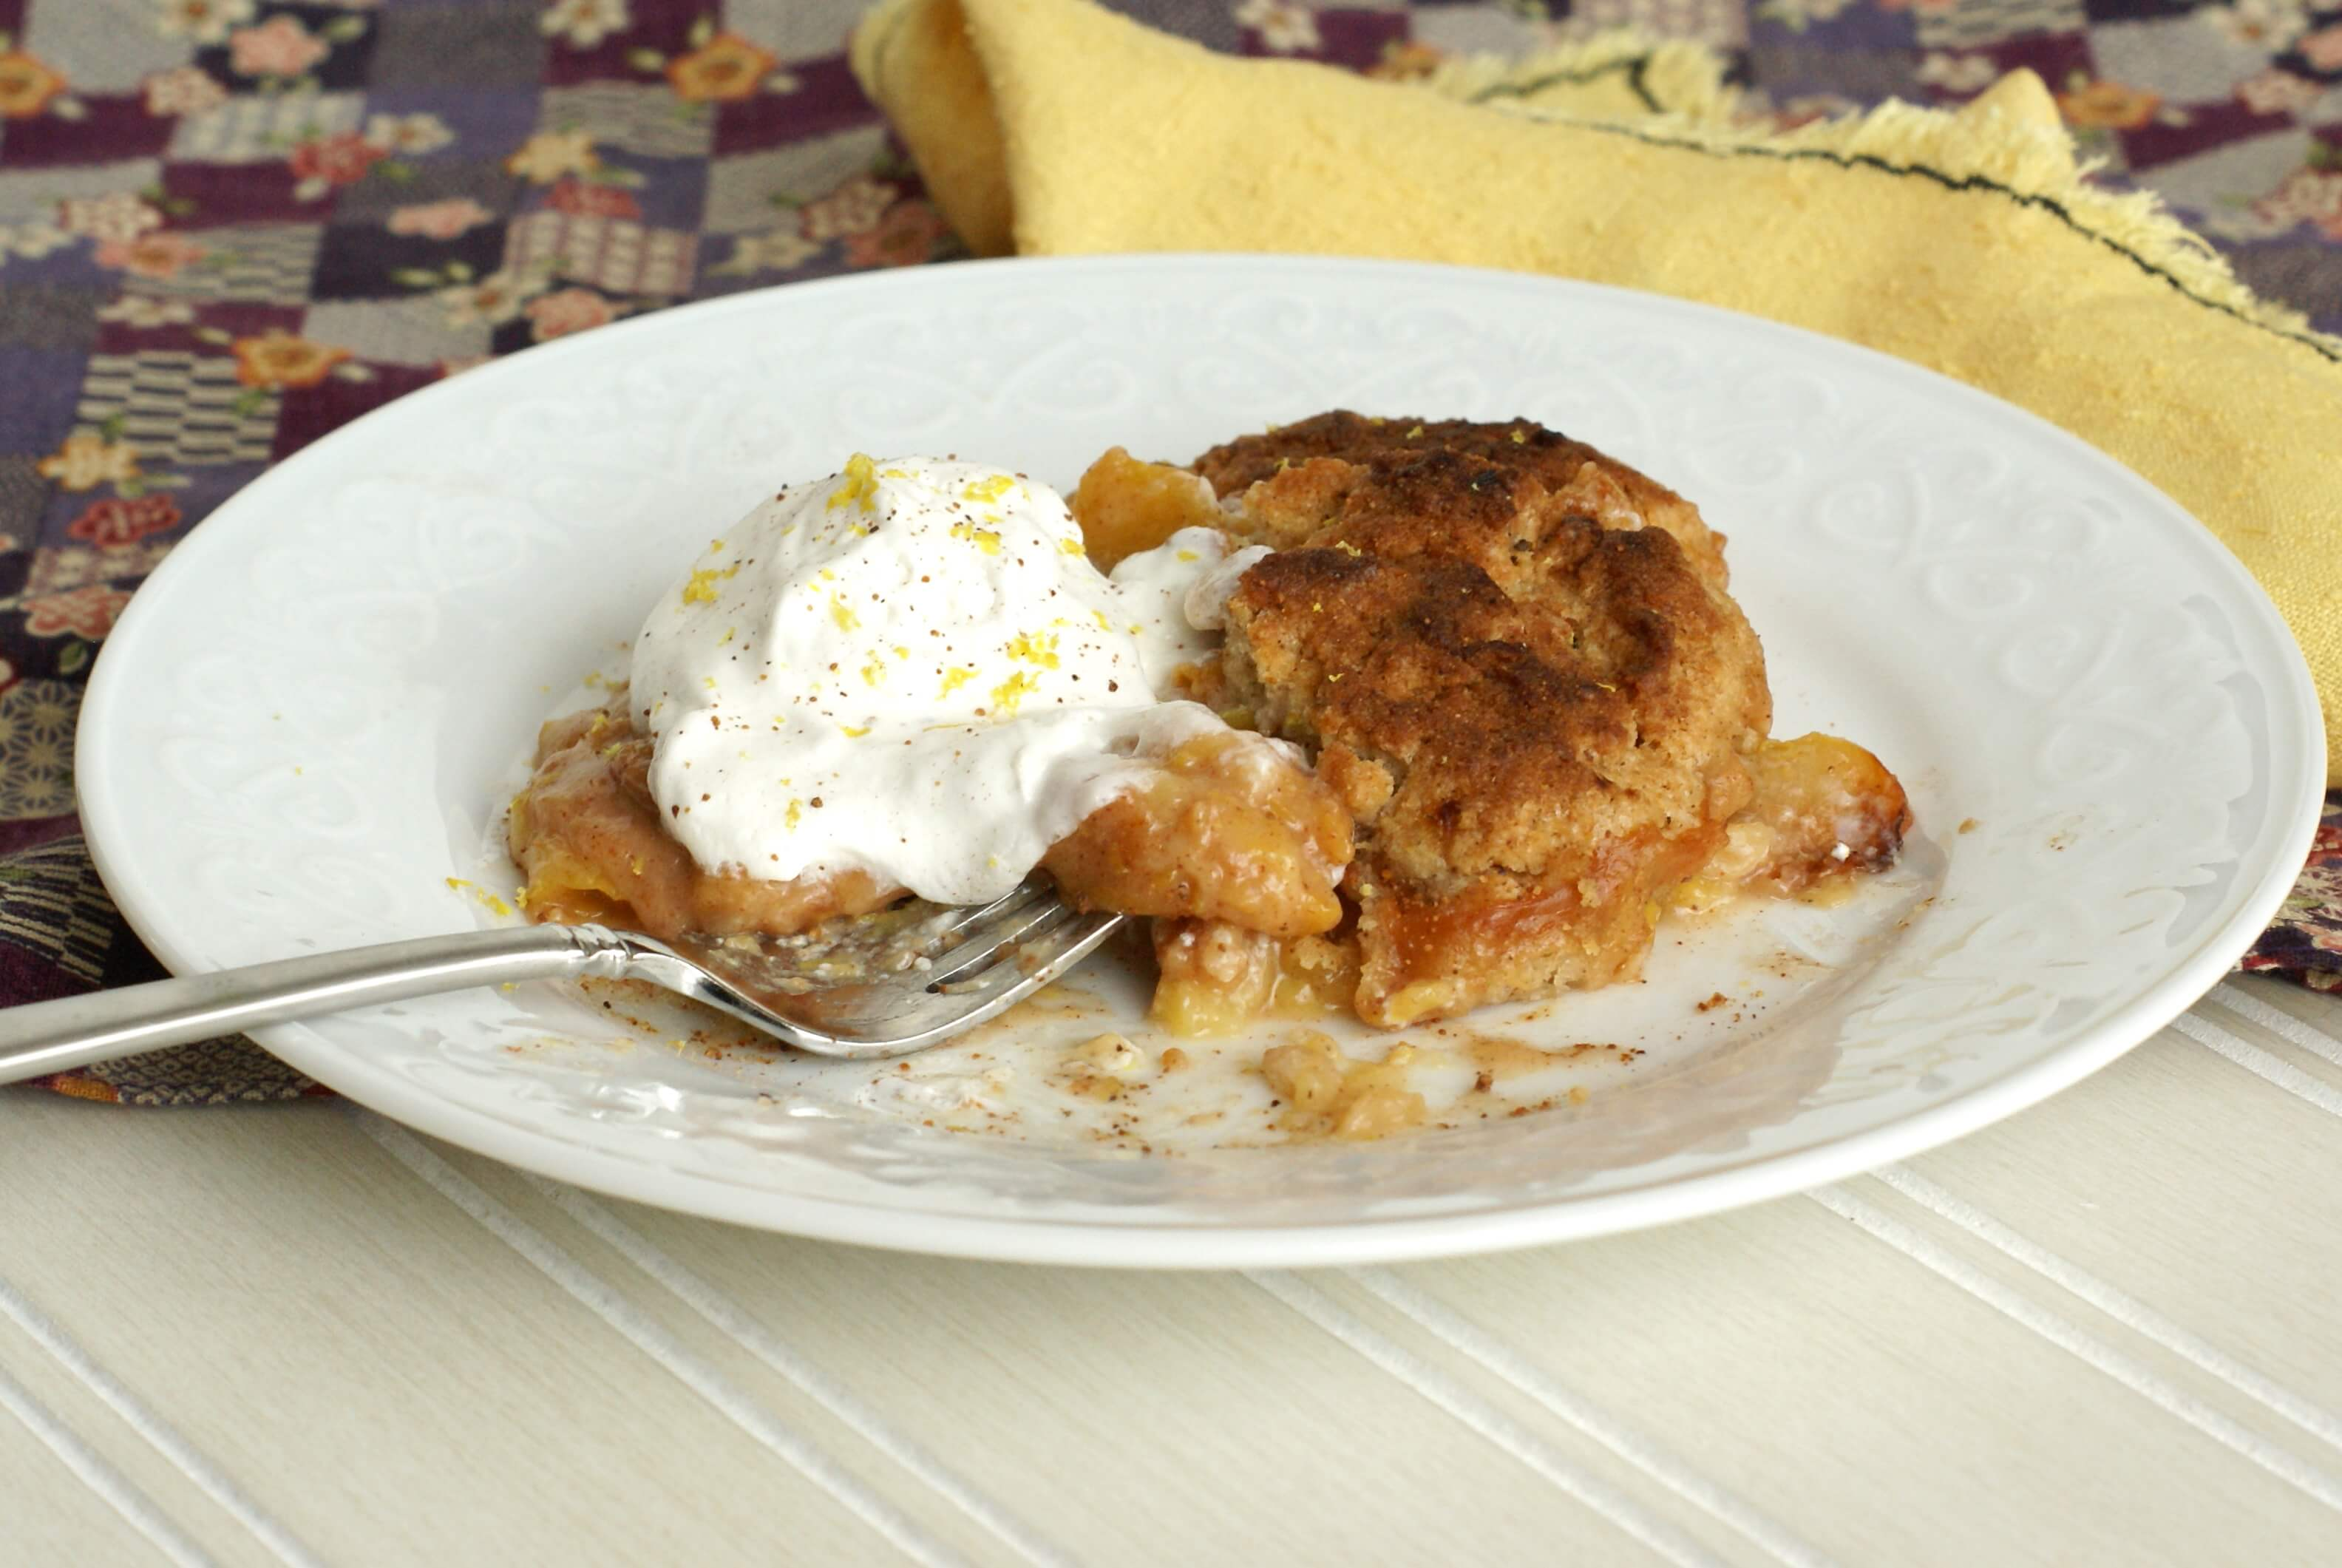 Plated Fruit Cobbler with Cool Whip